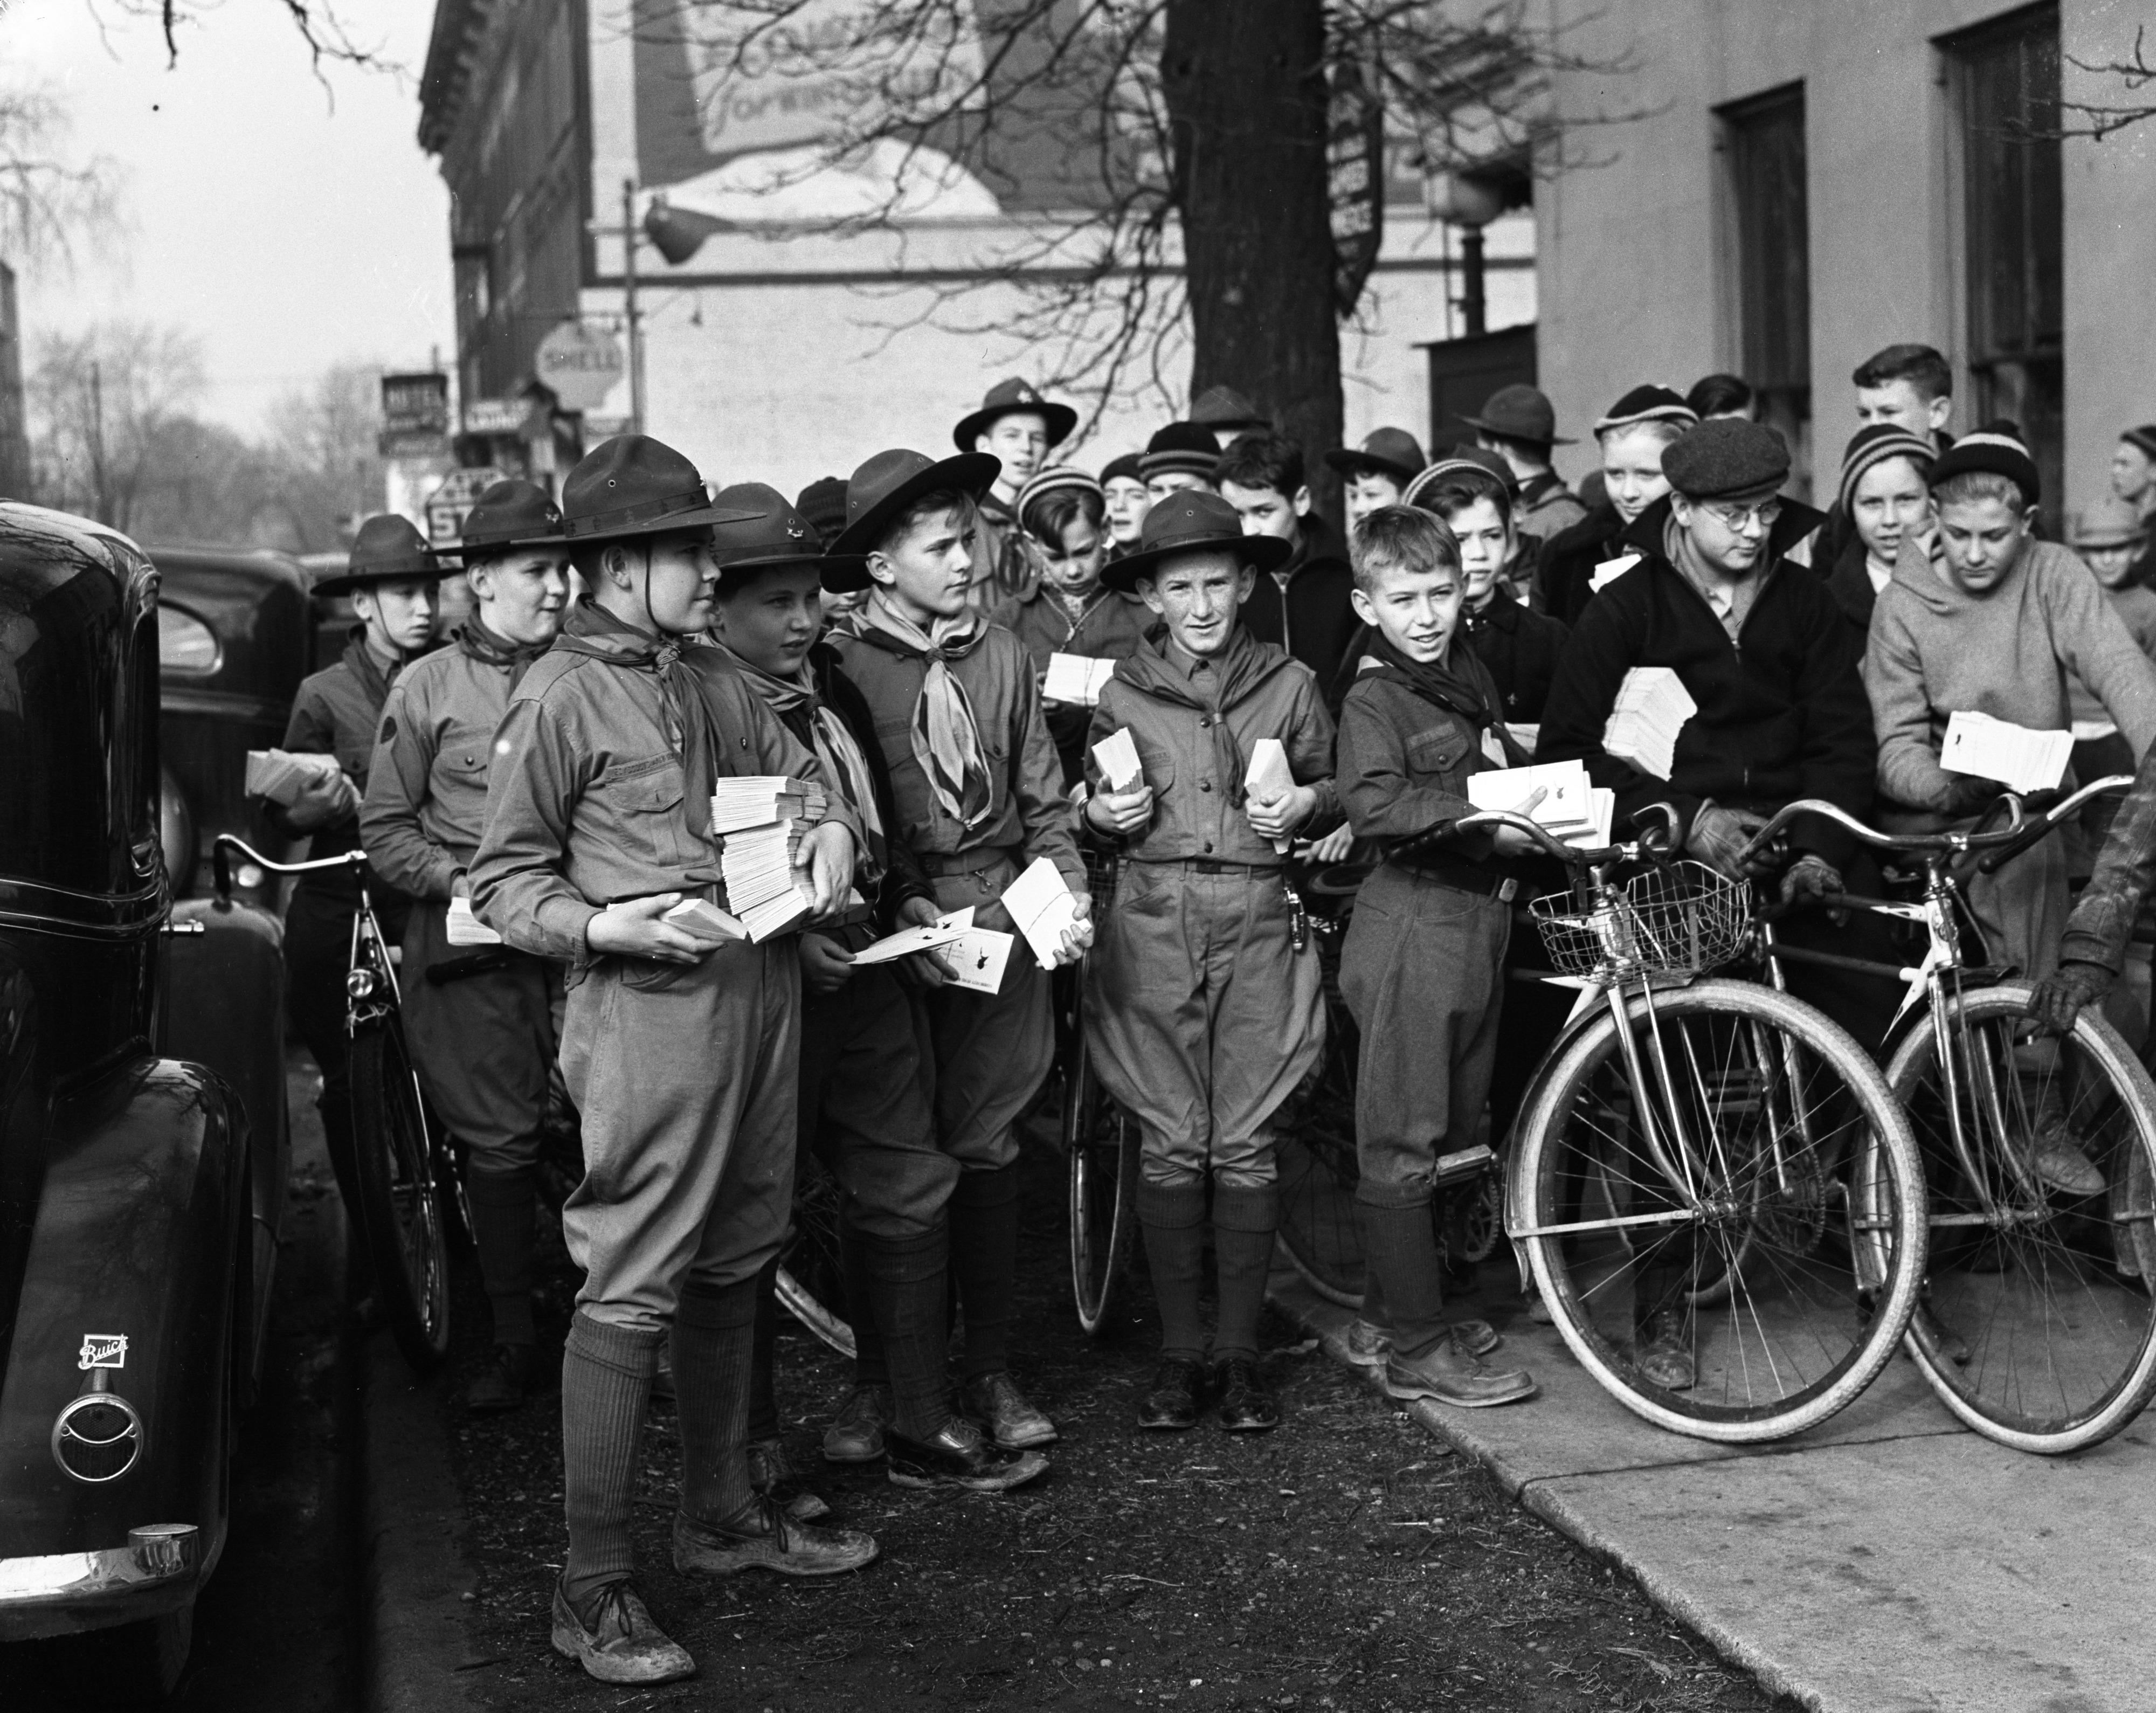 Community Fund Delivery by Boy Scouts, March 6, 1937 image